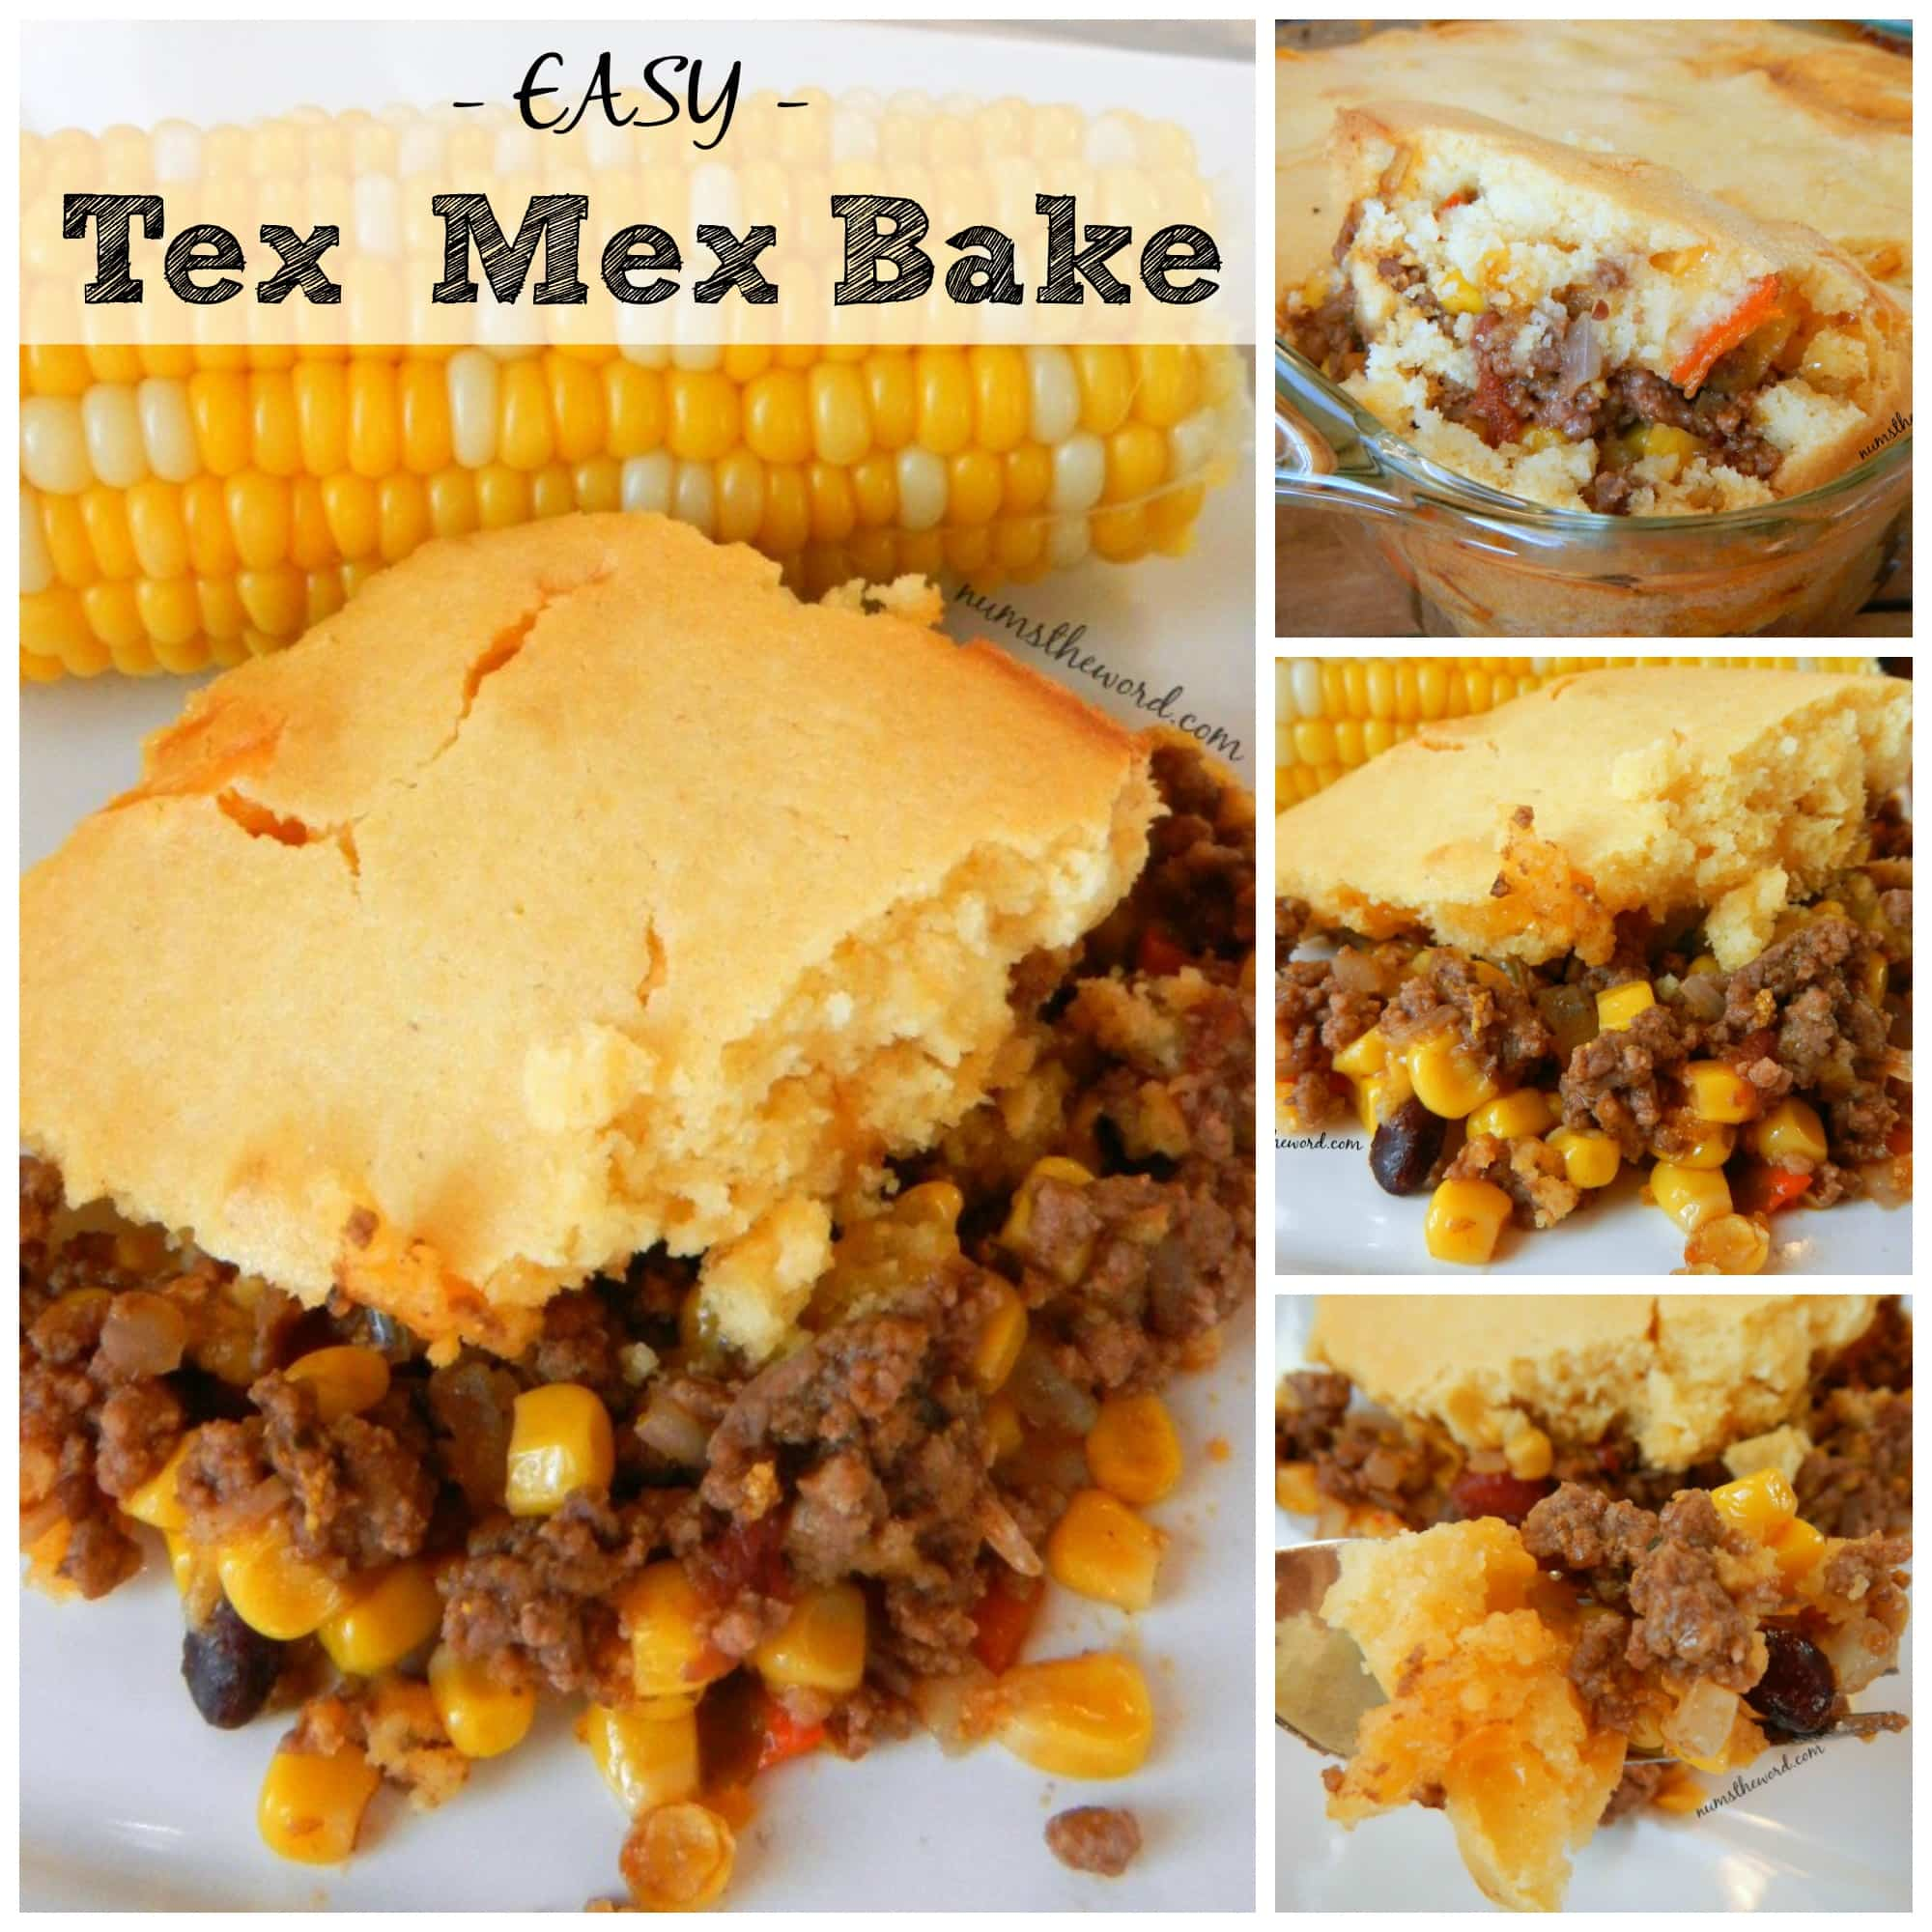 Easy Tex Mex Bake - Collage of images for Facebook